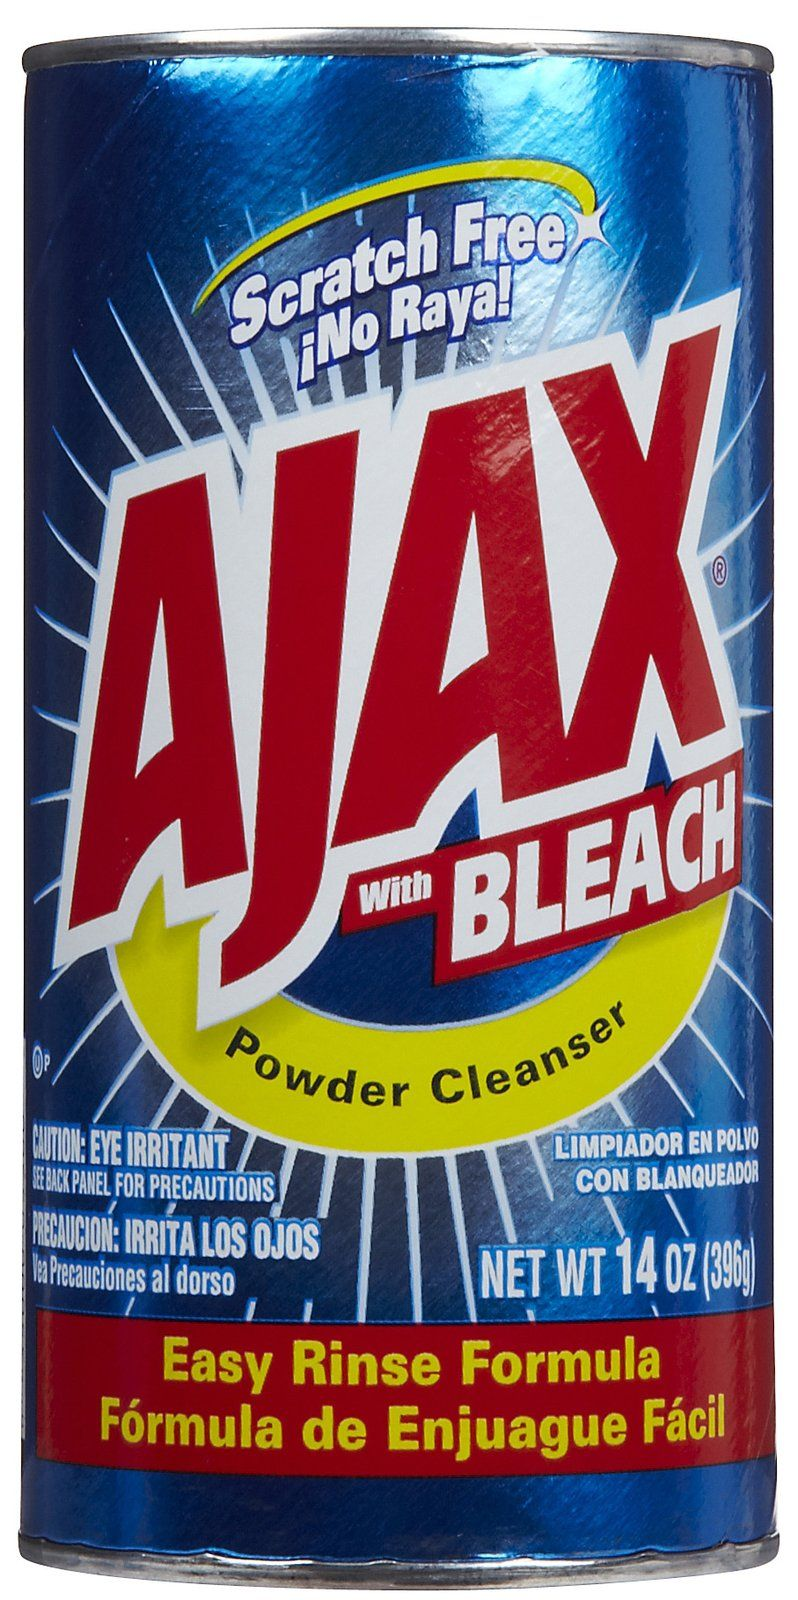 Love Ajax powder cleanser. I like the smell and my sinks stay bright and white.